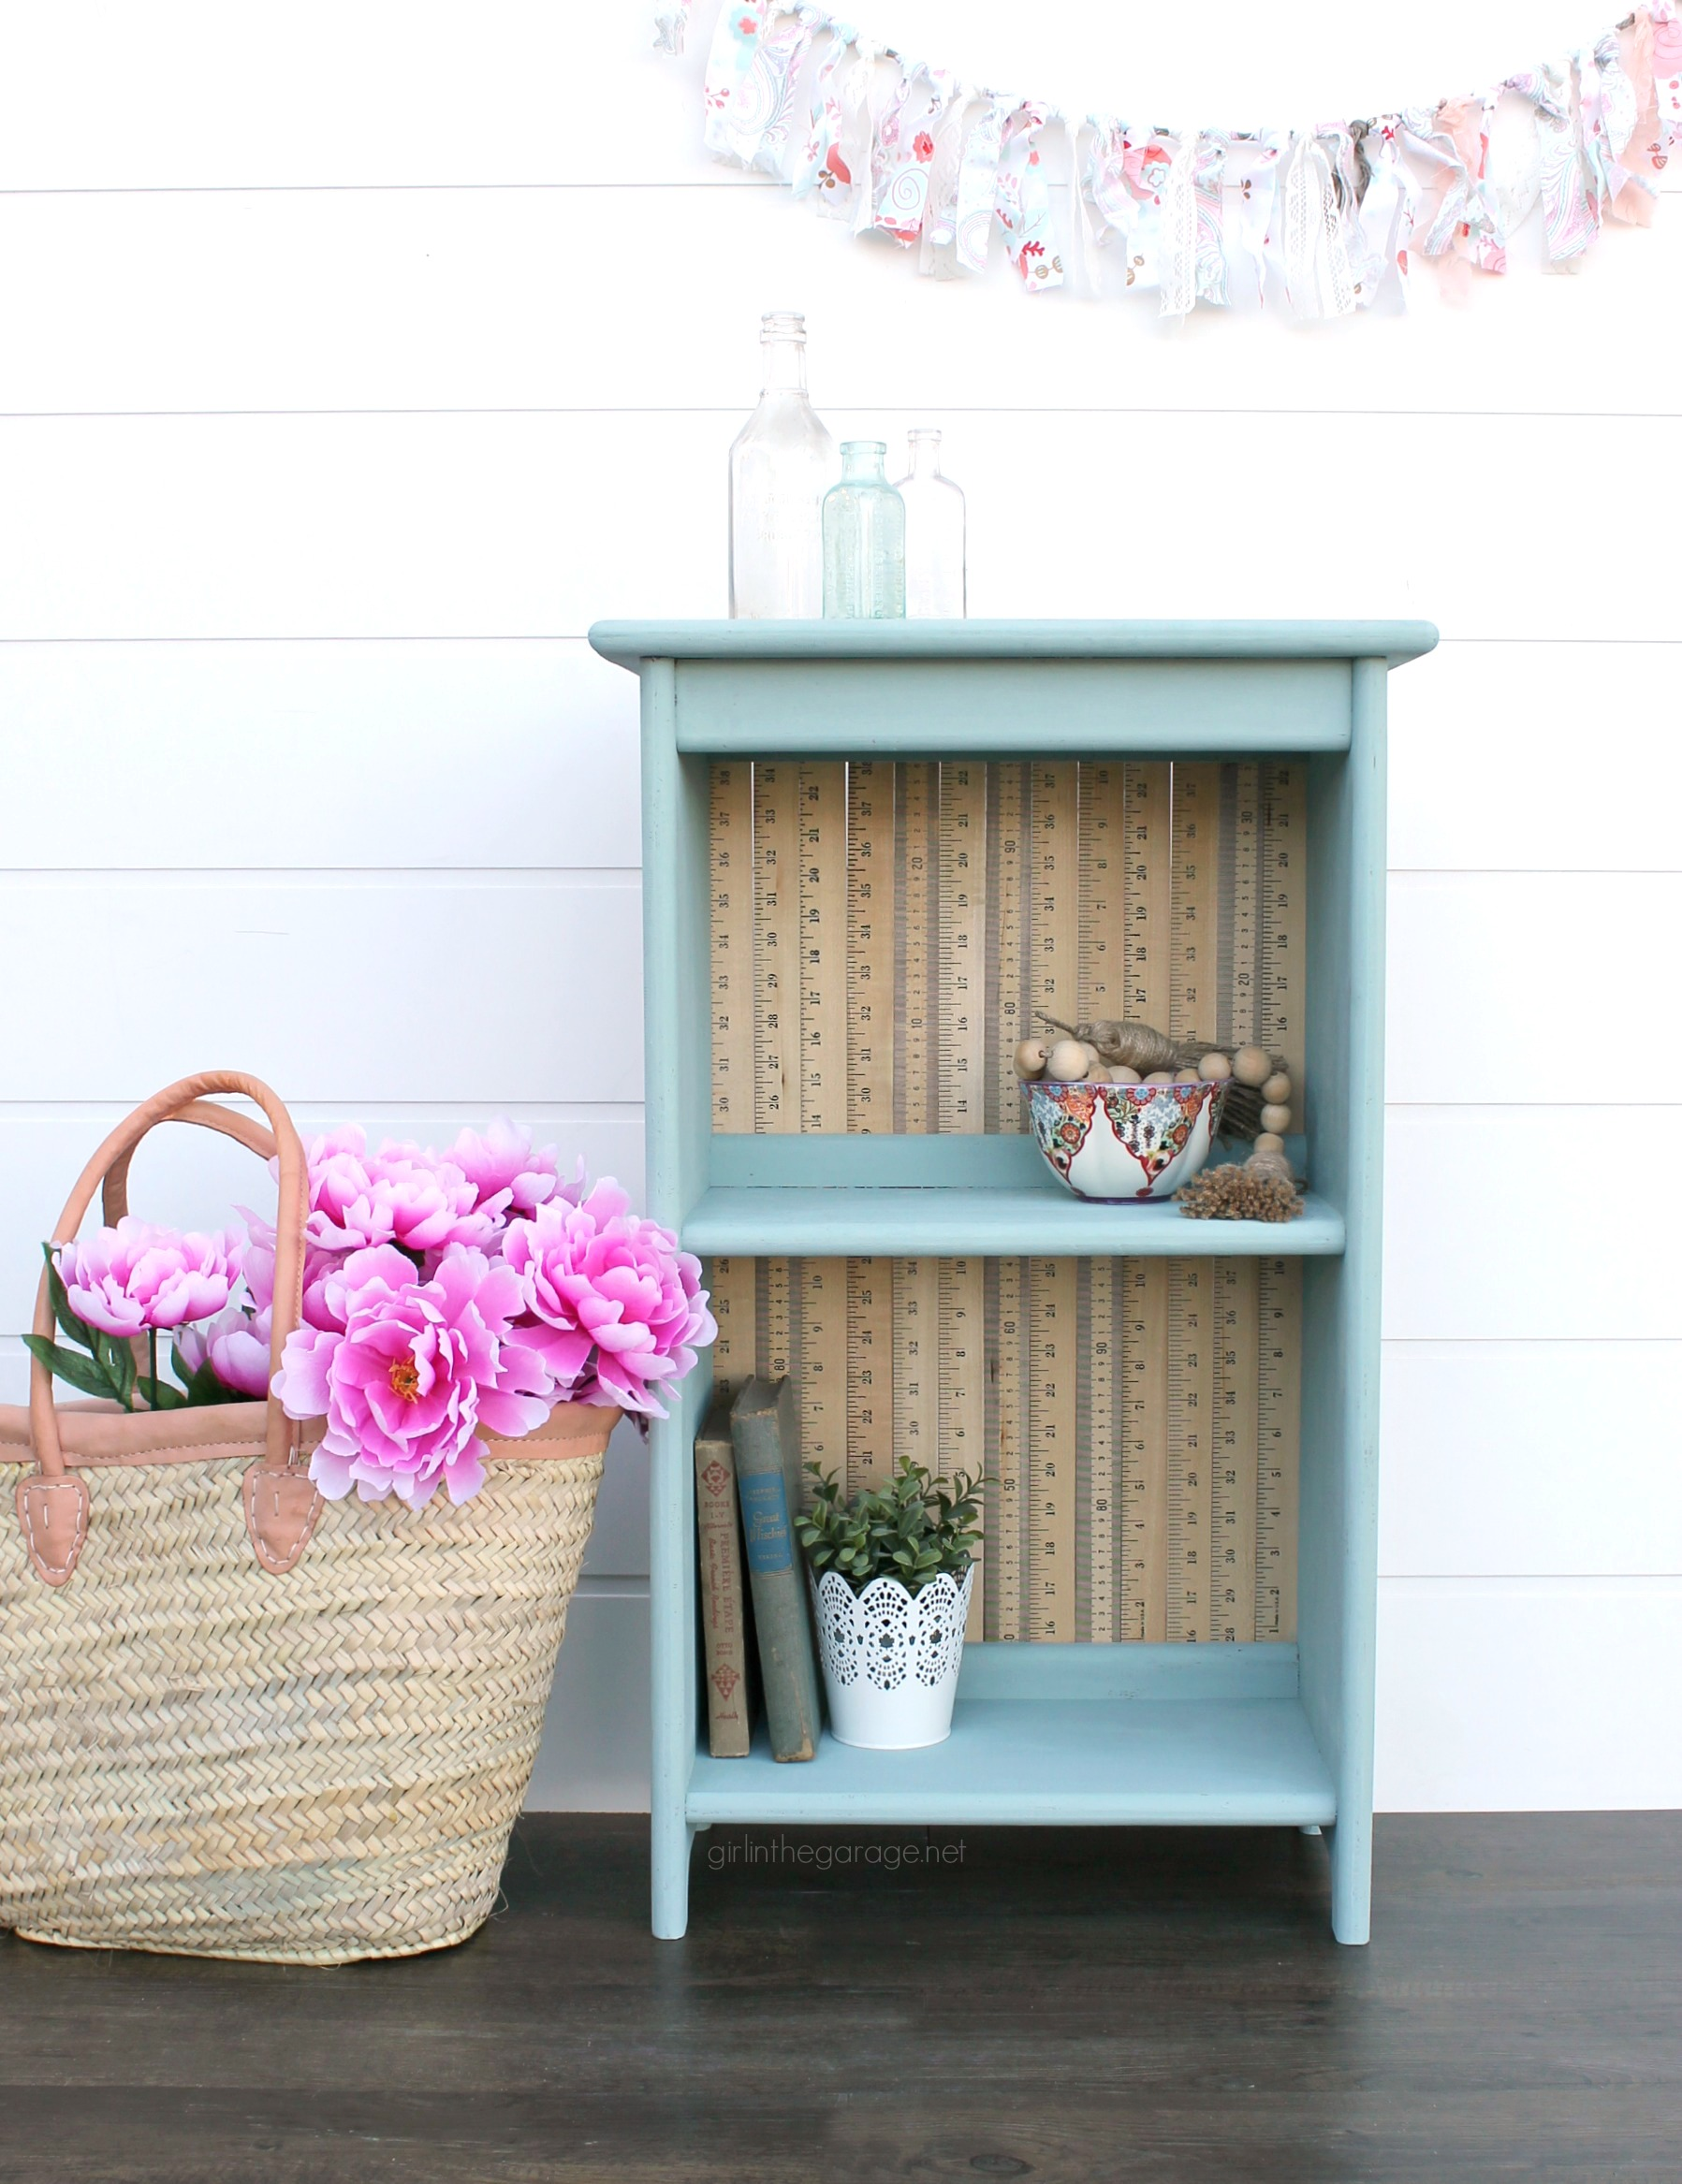 Give an old bookcase pizzazz with Chalk Paint and repurposed yardsticks. This easy painted furniture makeover idea oozes vintage charm. By Girl in the Garage